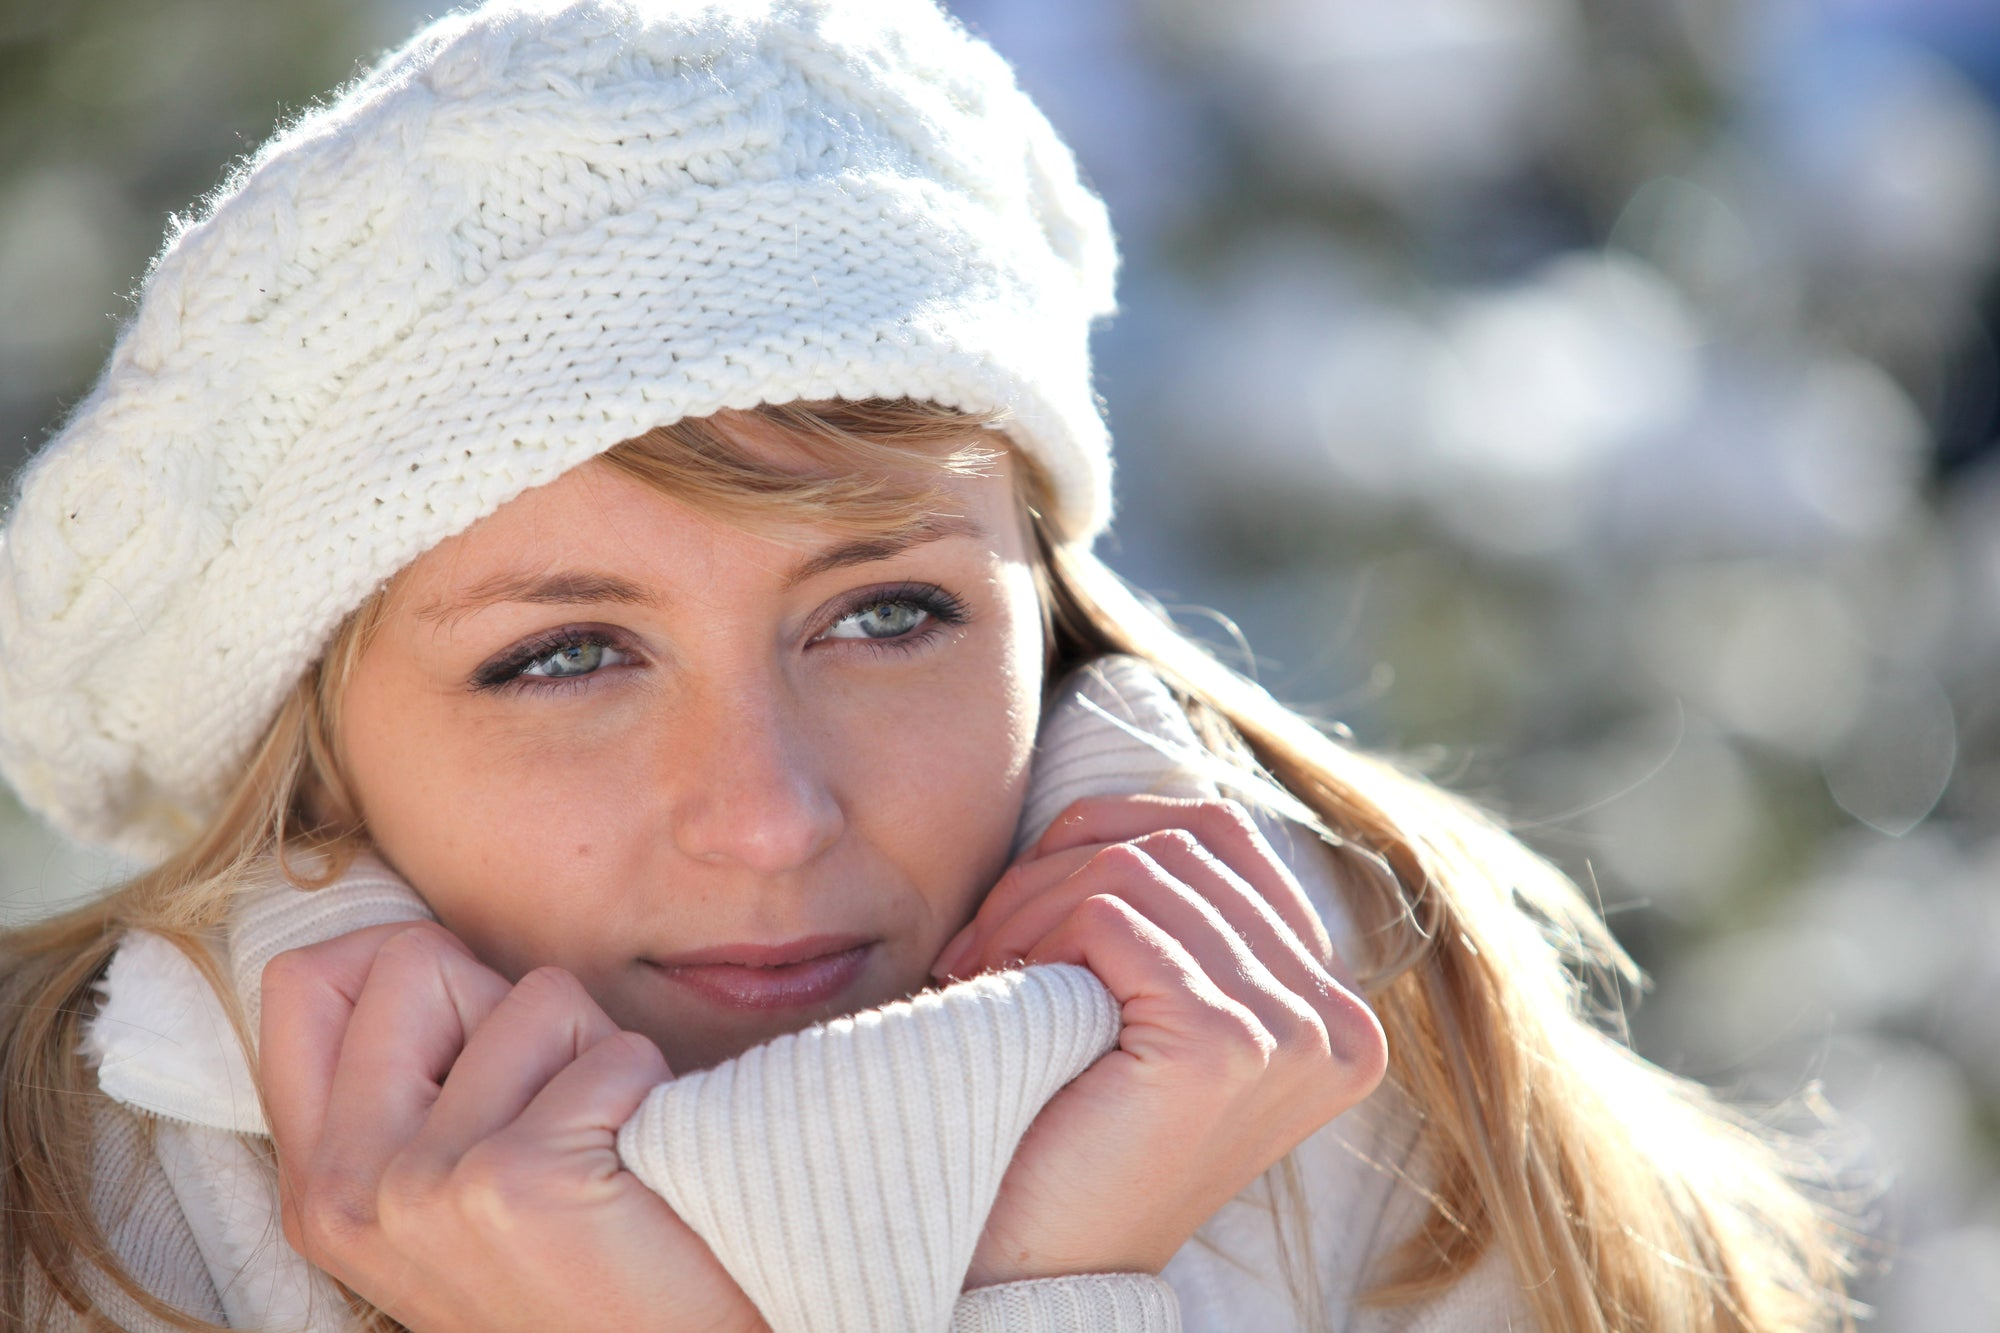 Vitamin D and Why You Need More During Winter